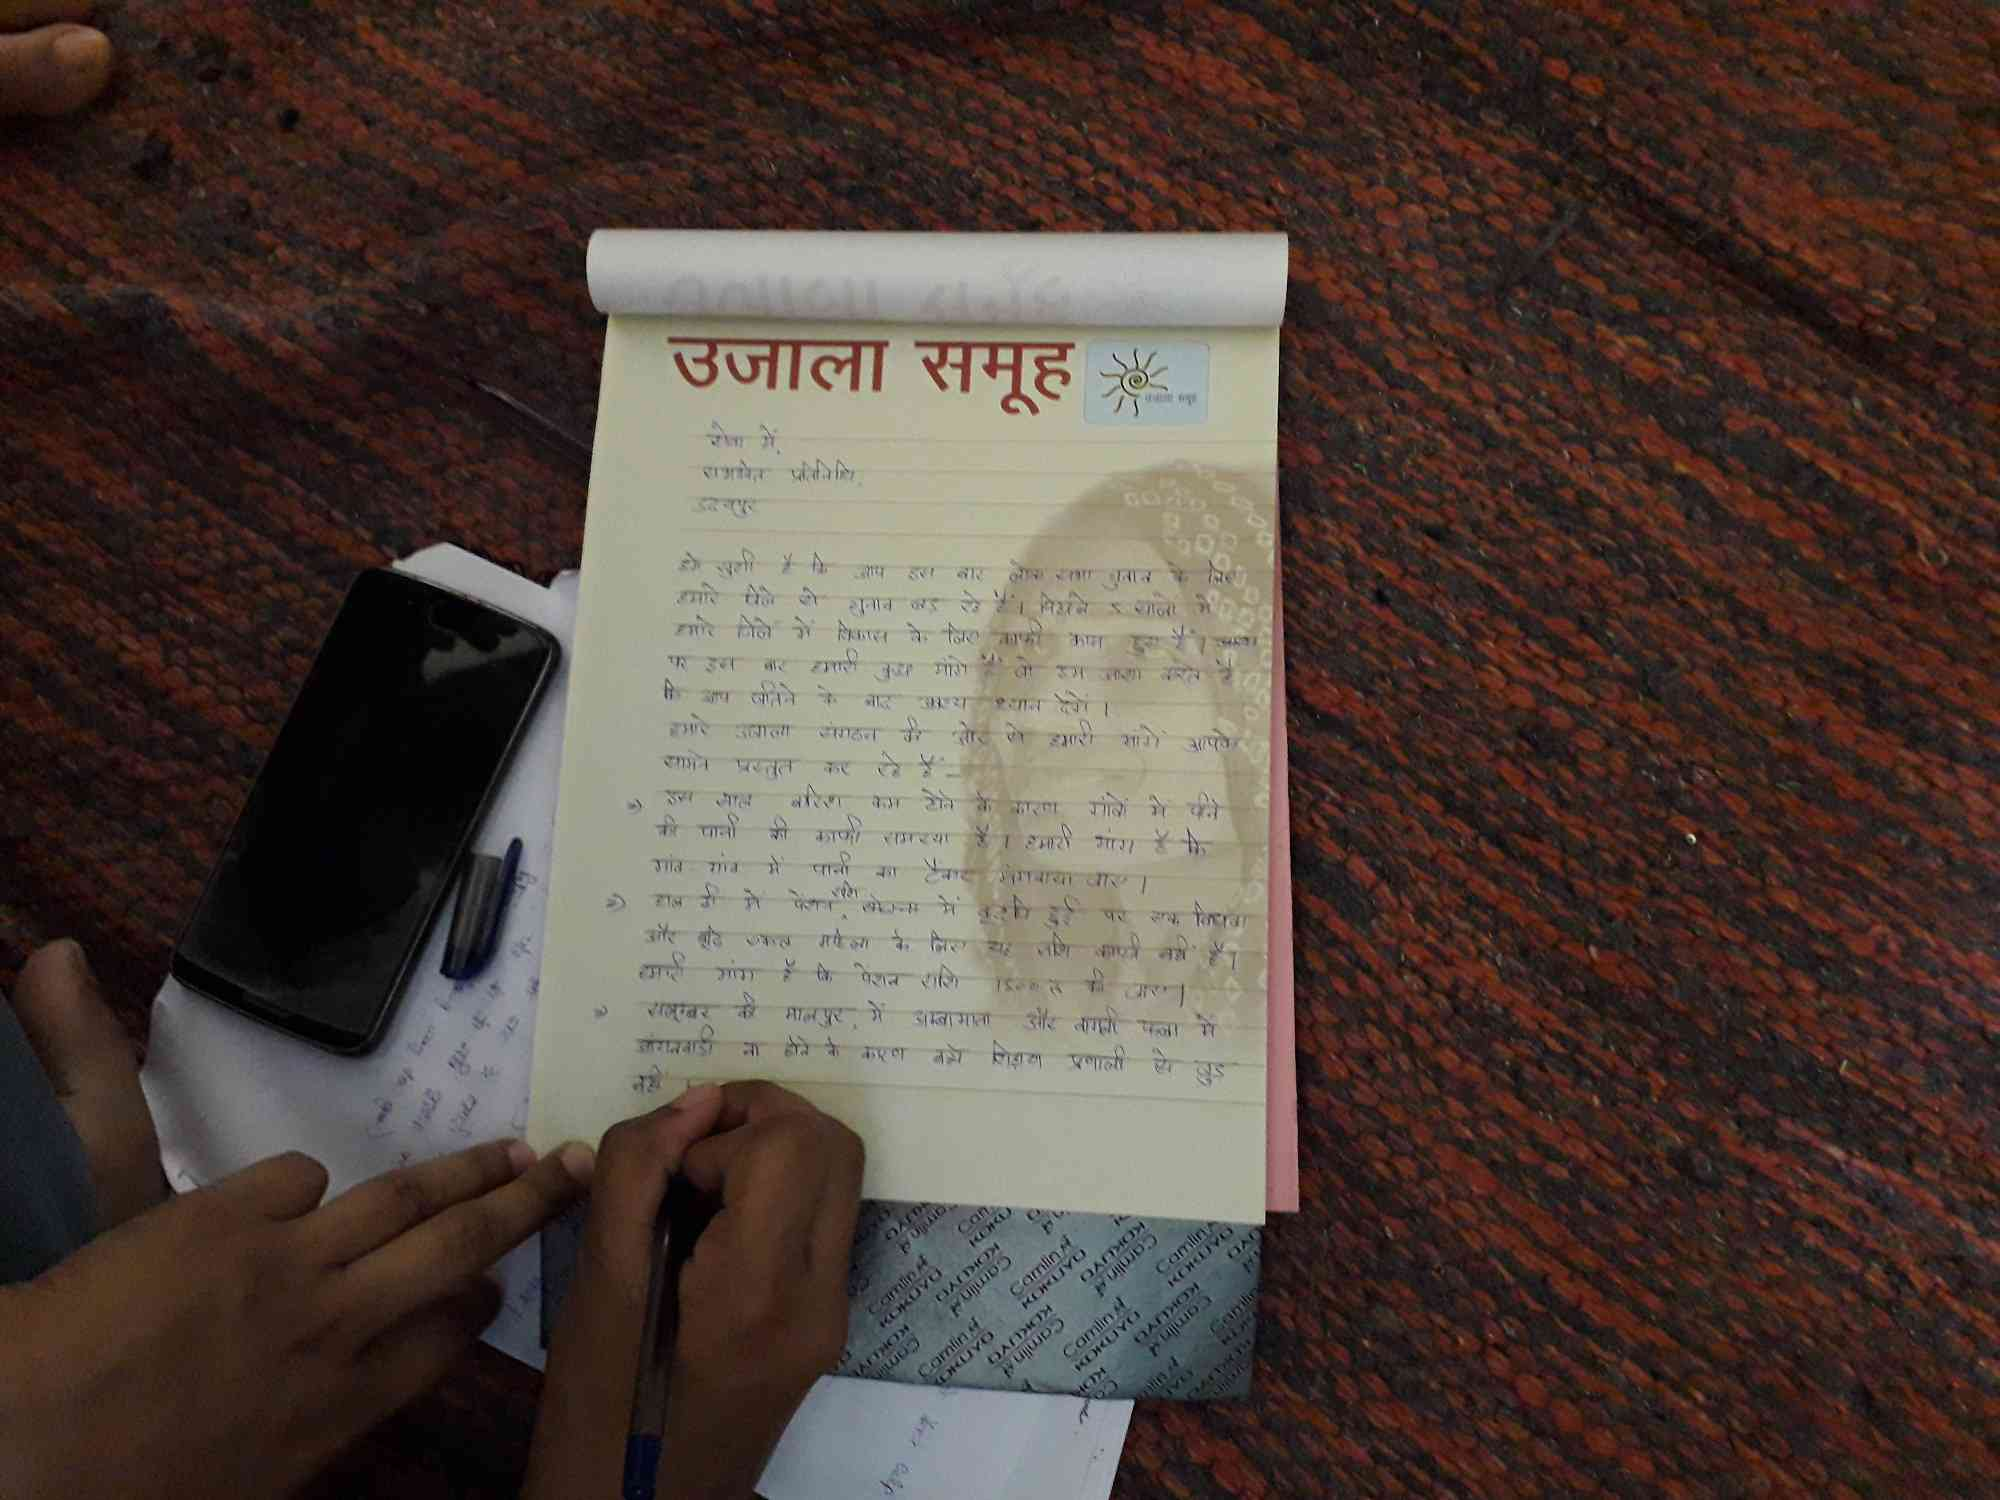 A social worker from Aajeevika Bureau helps women from the Ujala collective write a charter of demands from local poll candidates.